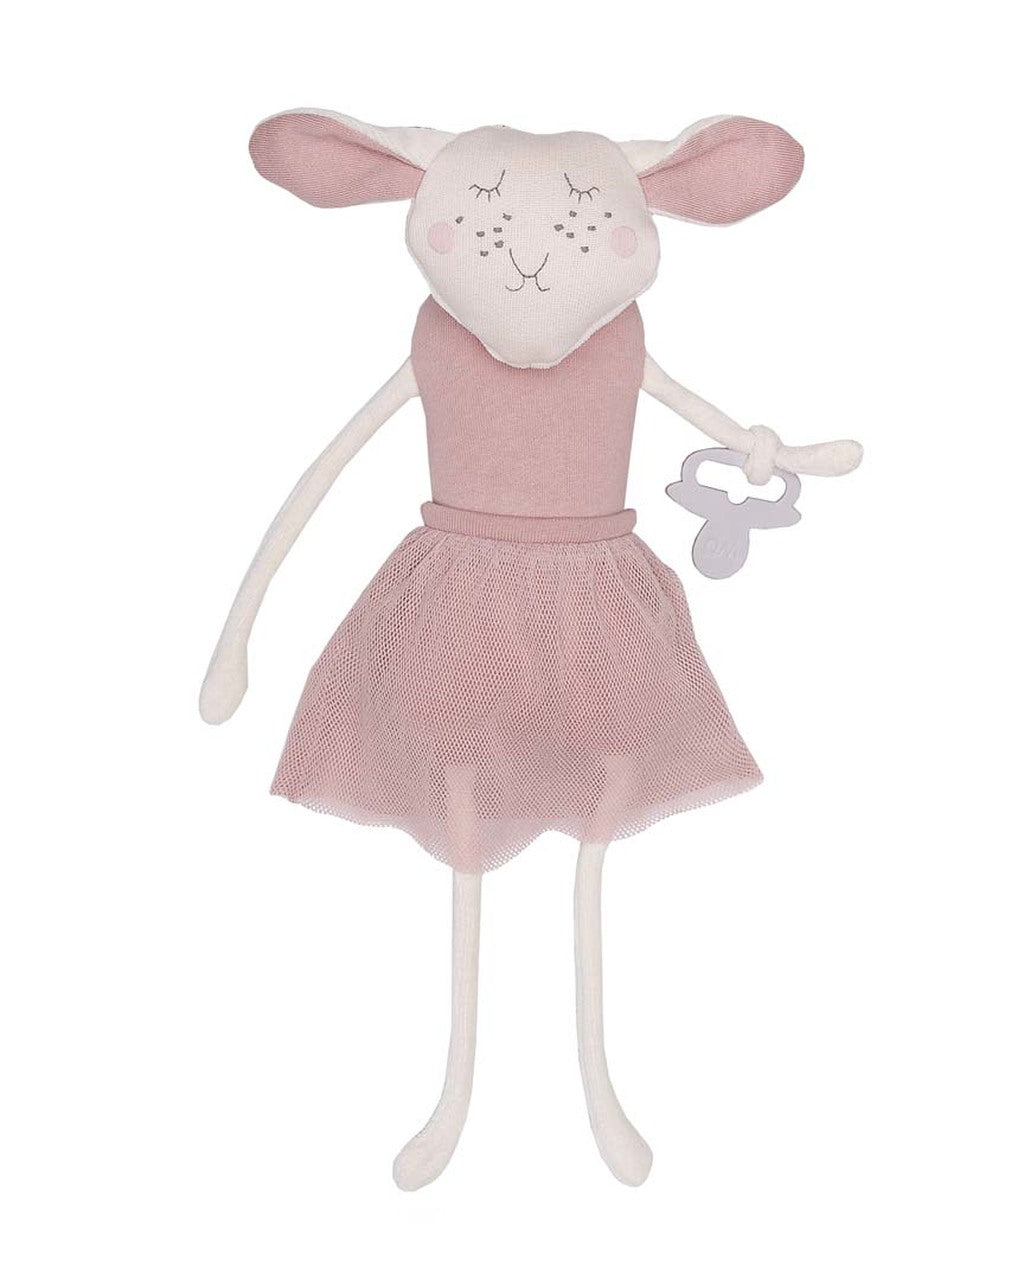 Soft Toy Sheep with Pink Tutu T-83-S-07 By Wooly Organic